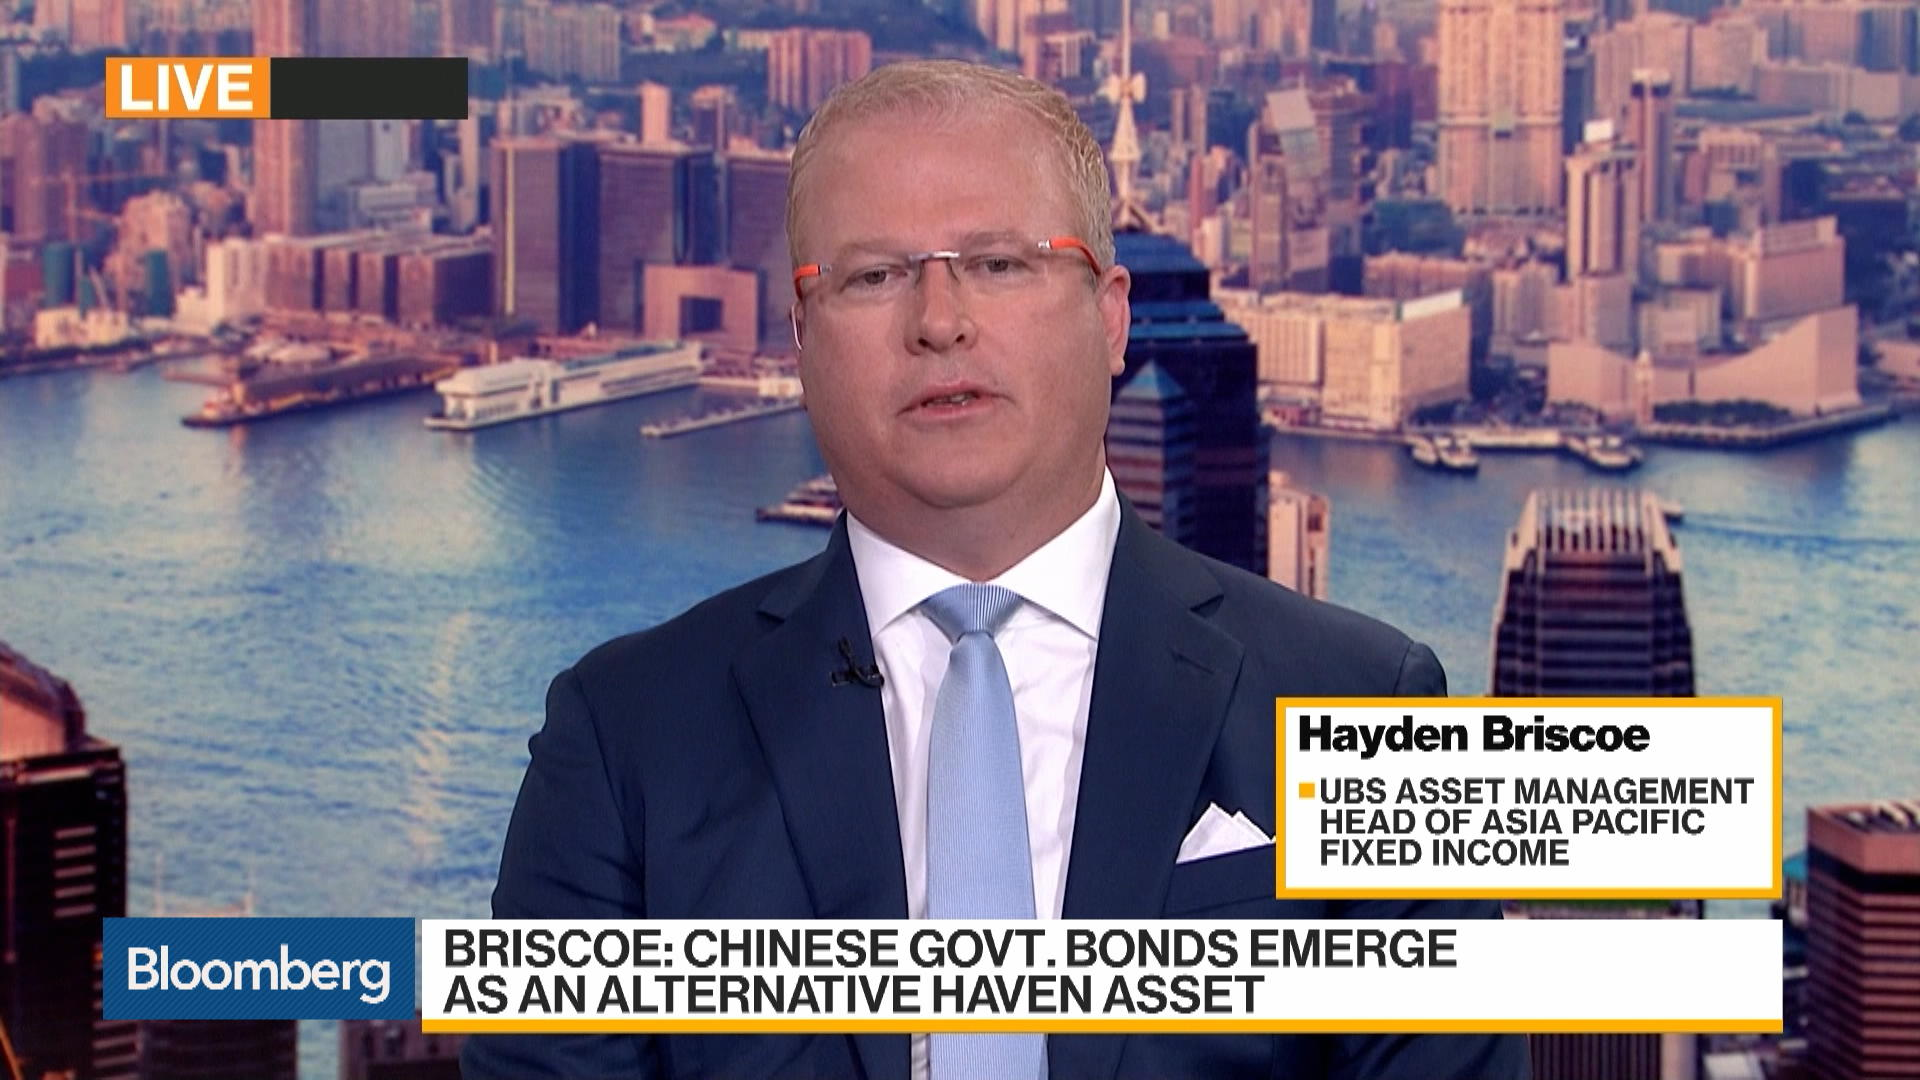 China Government Bonds Becoming a Safe Heaven Asset, UBS AM's Briscoe Says